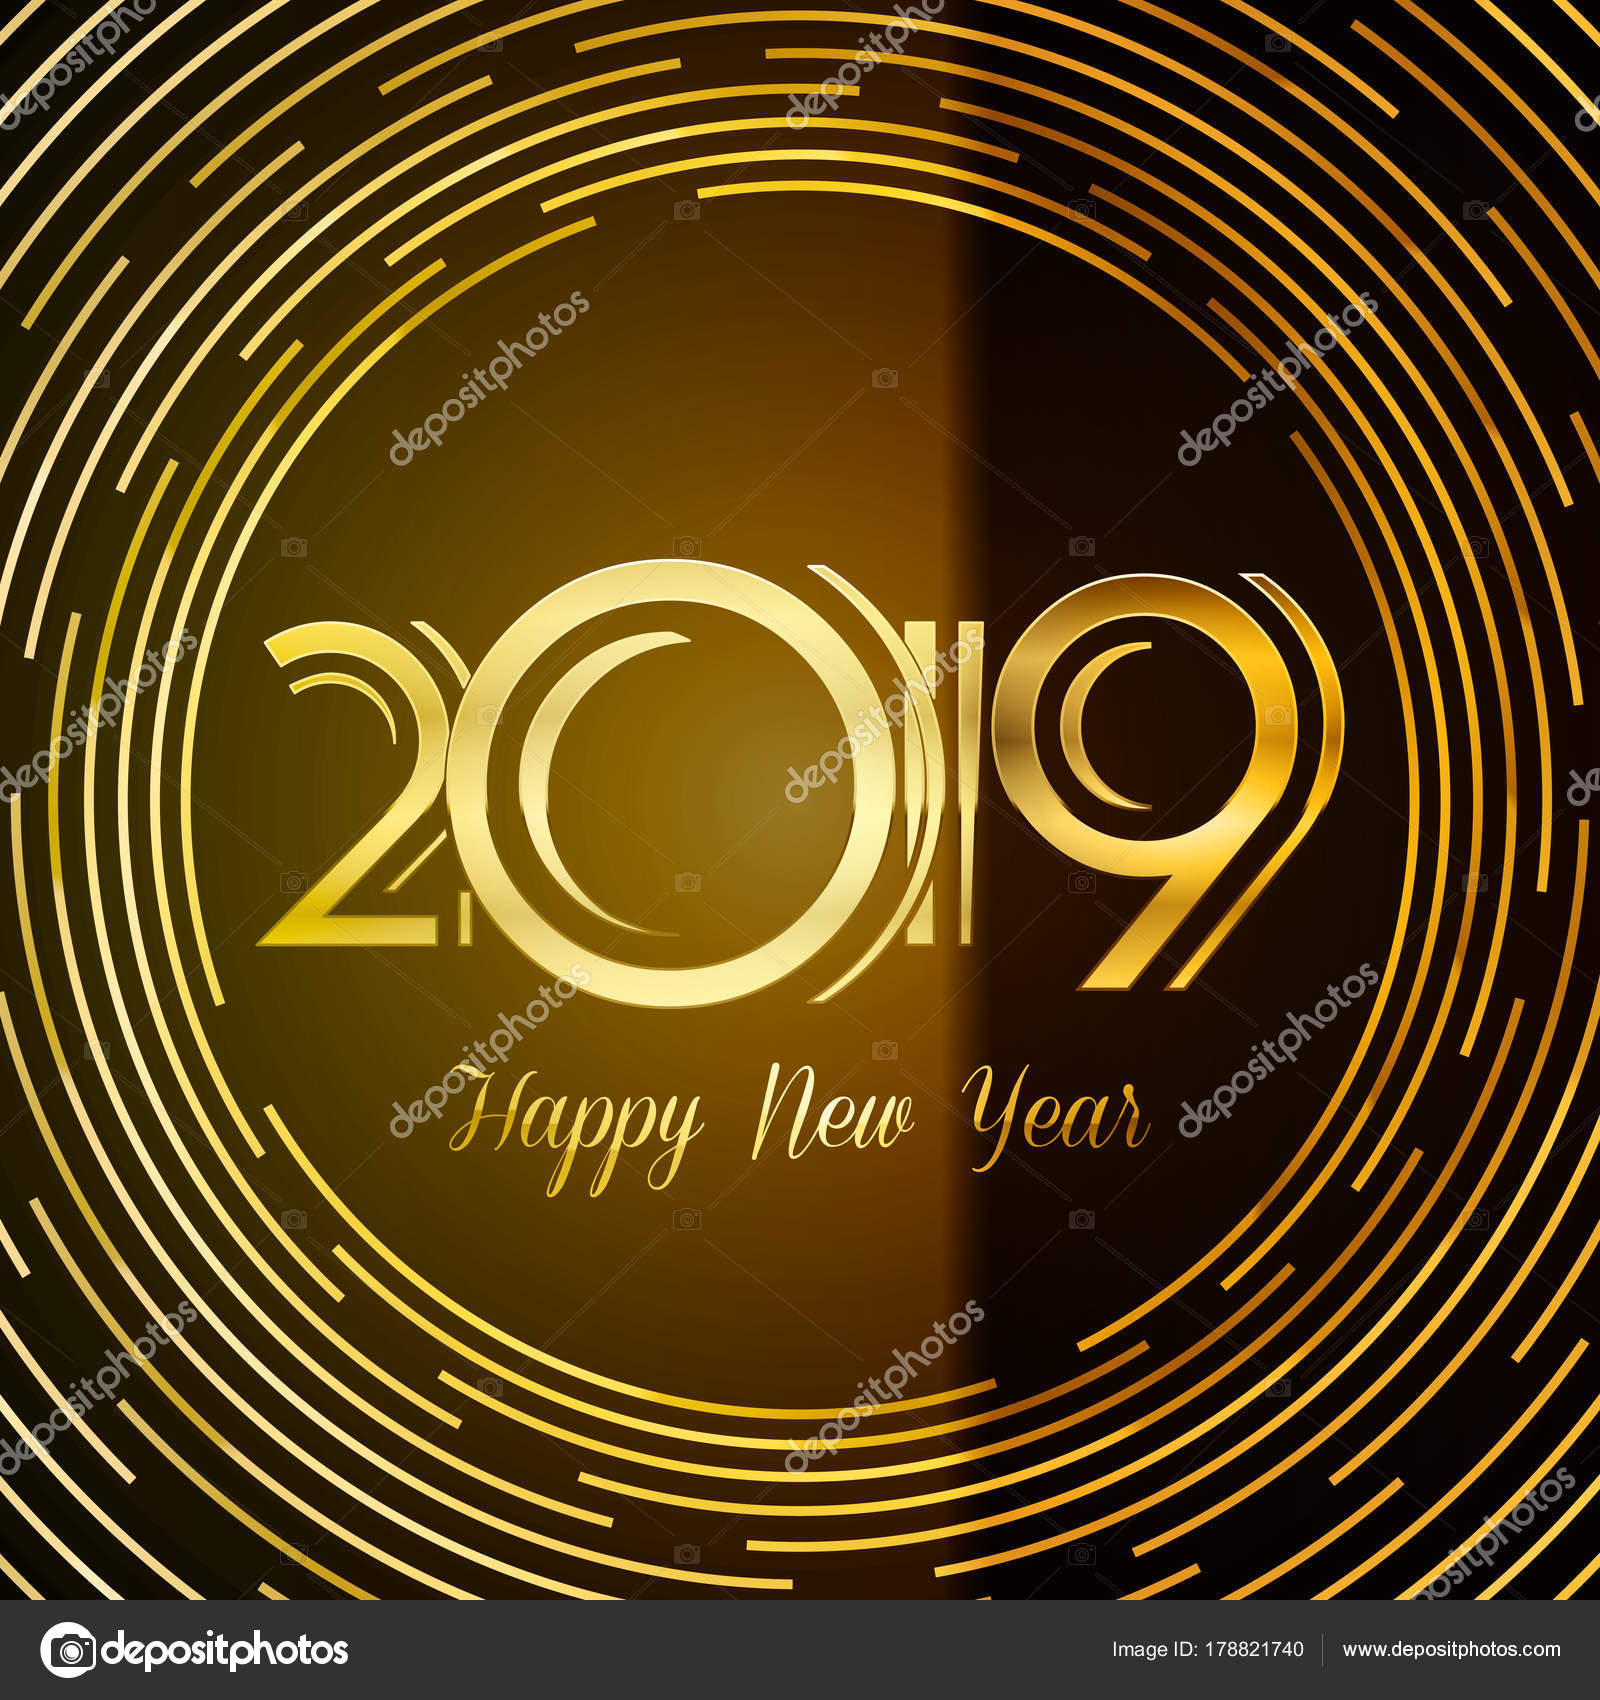 Happy new year 2019 greeting card golden numbers on dark happy new year 2019 greeting card golden numbers on dark background with round lines design kristyandbryce Choice Image